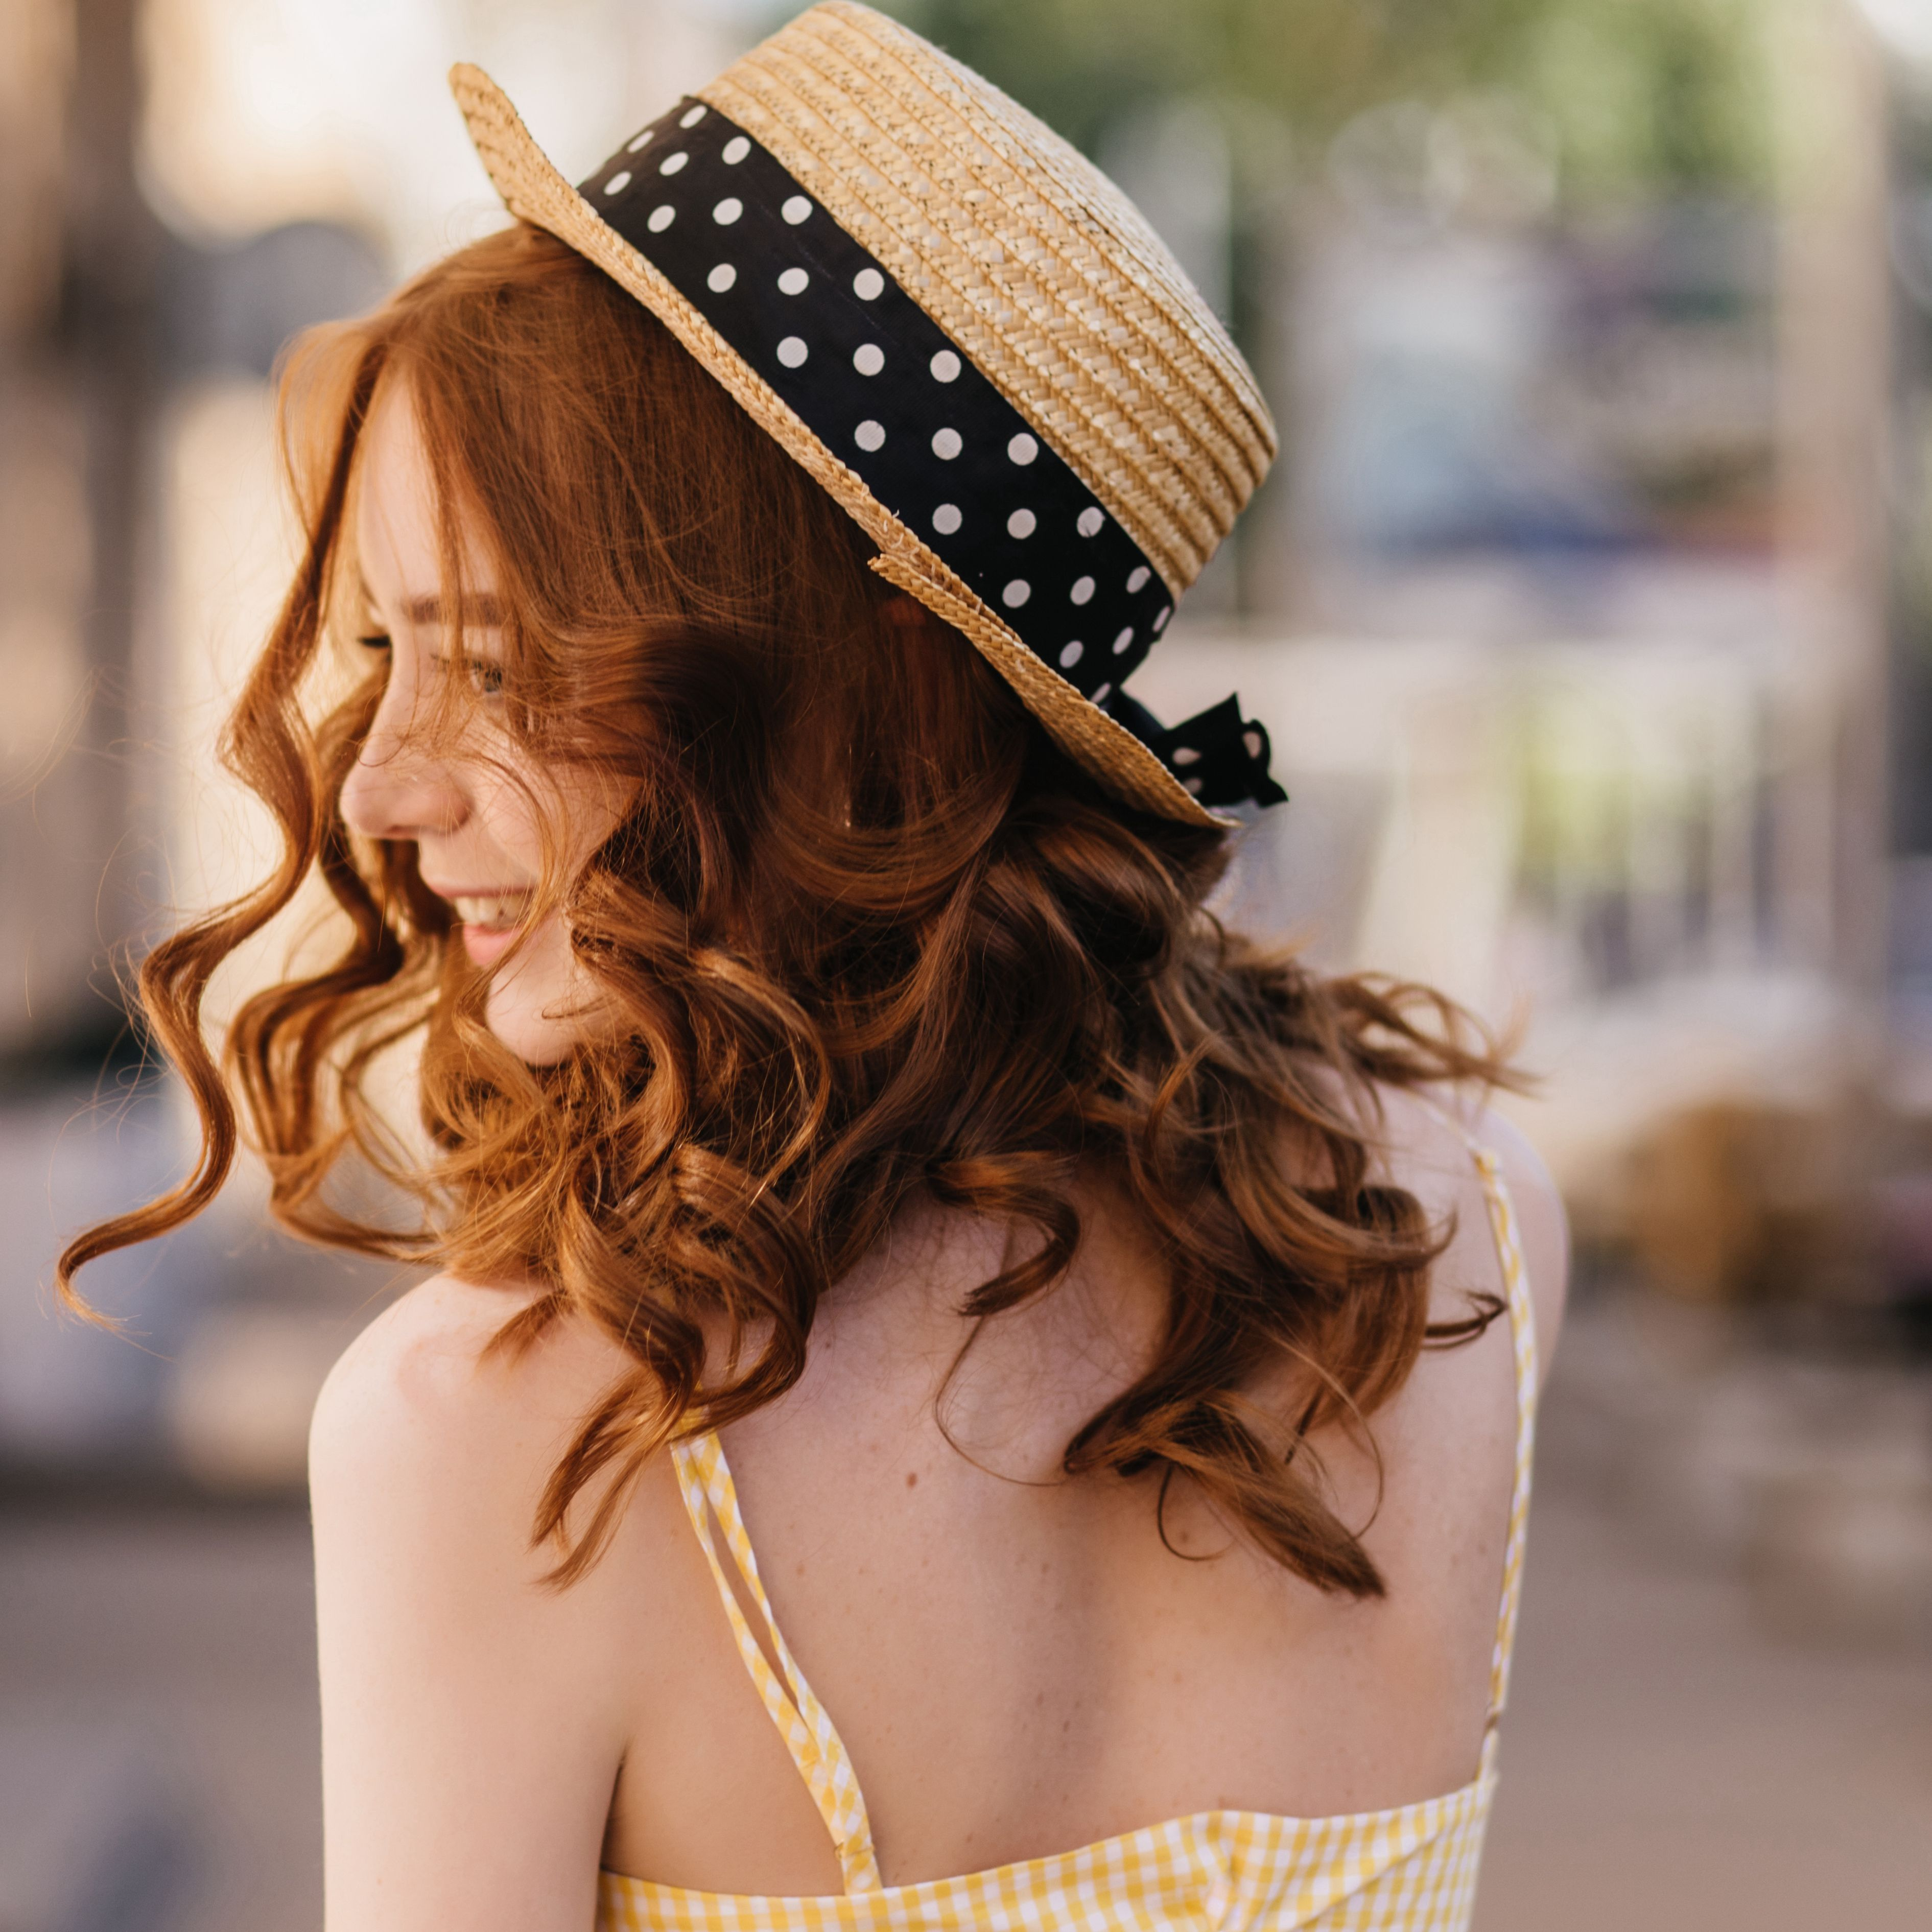 portrait-from-back-of-carefree-ginger-woman-in-hat-XBRKRYV.jpg